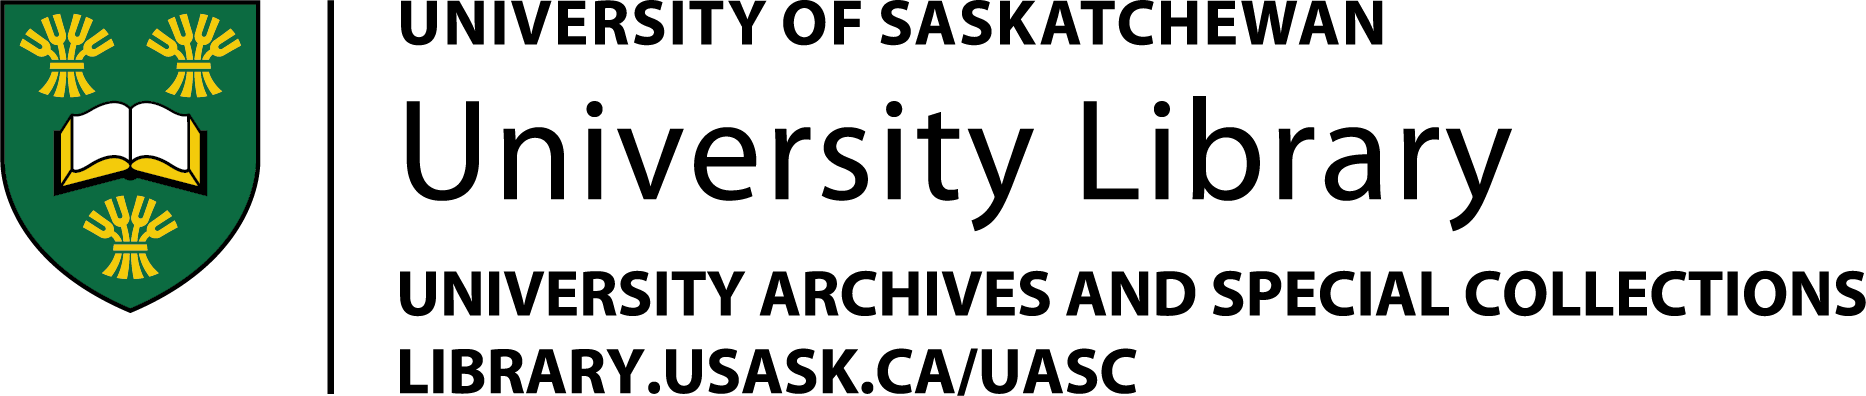 Ir para University of Saskatchewan, University Archives & Special Collections